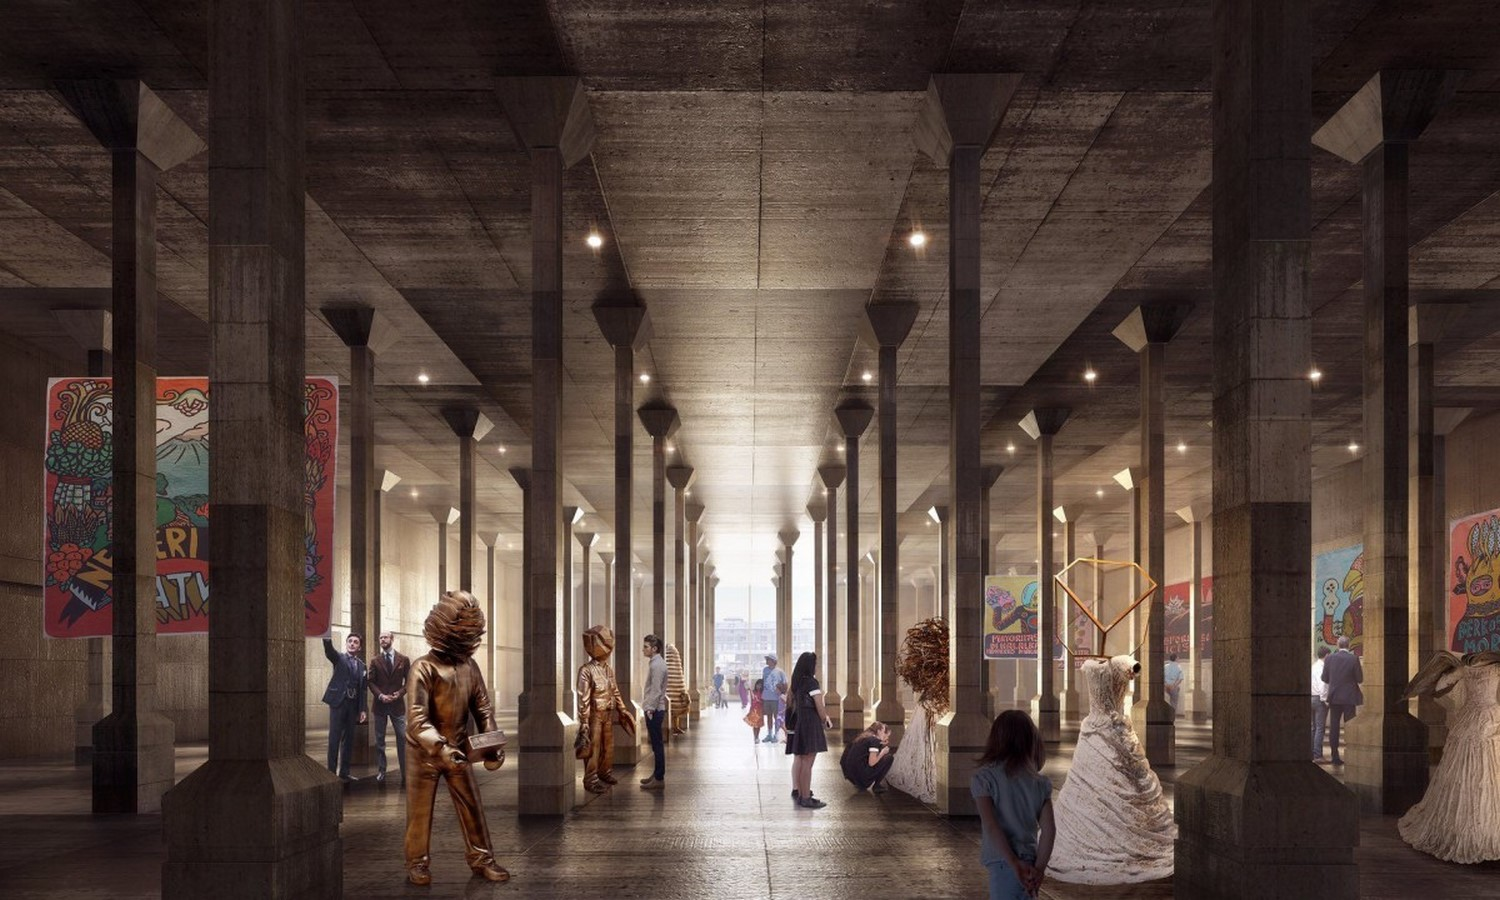 New Images For Art Gallery Of South Wales Expansion In Sydney revealed by SANAA - Sheet11